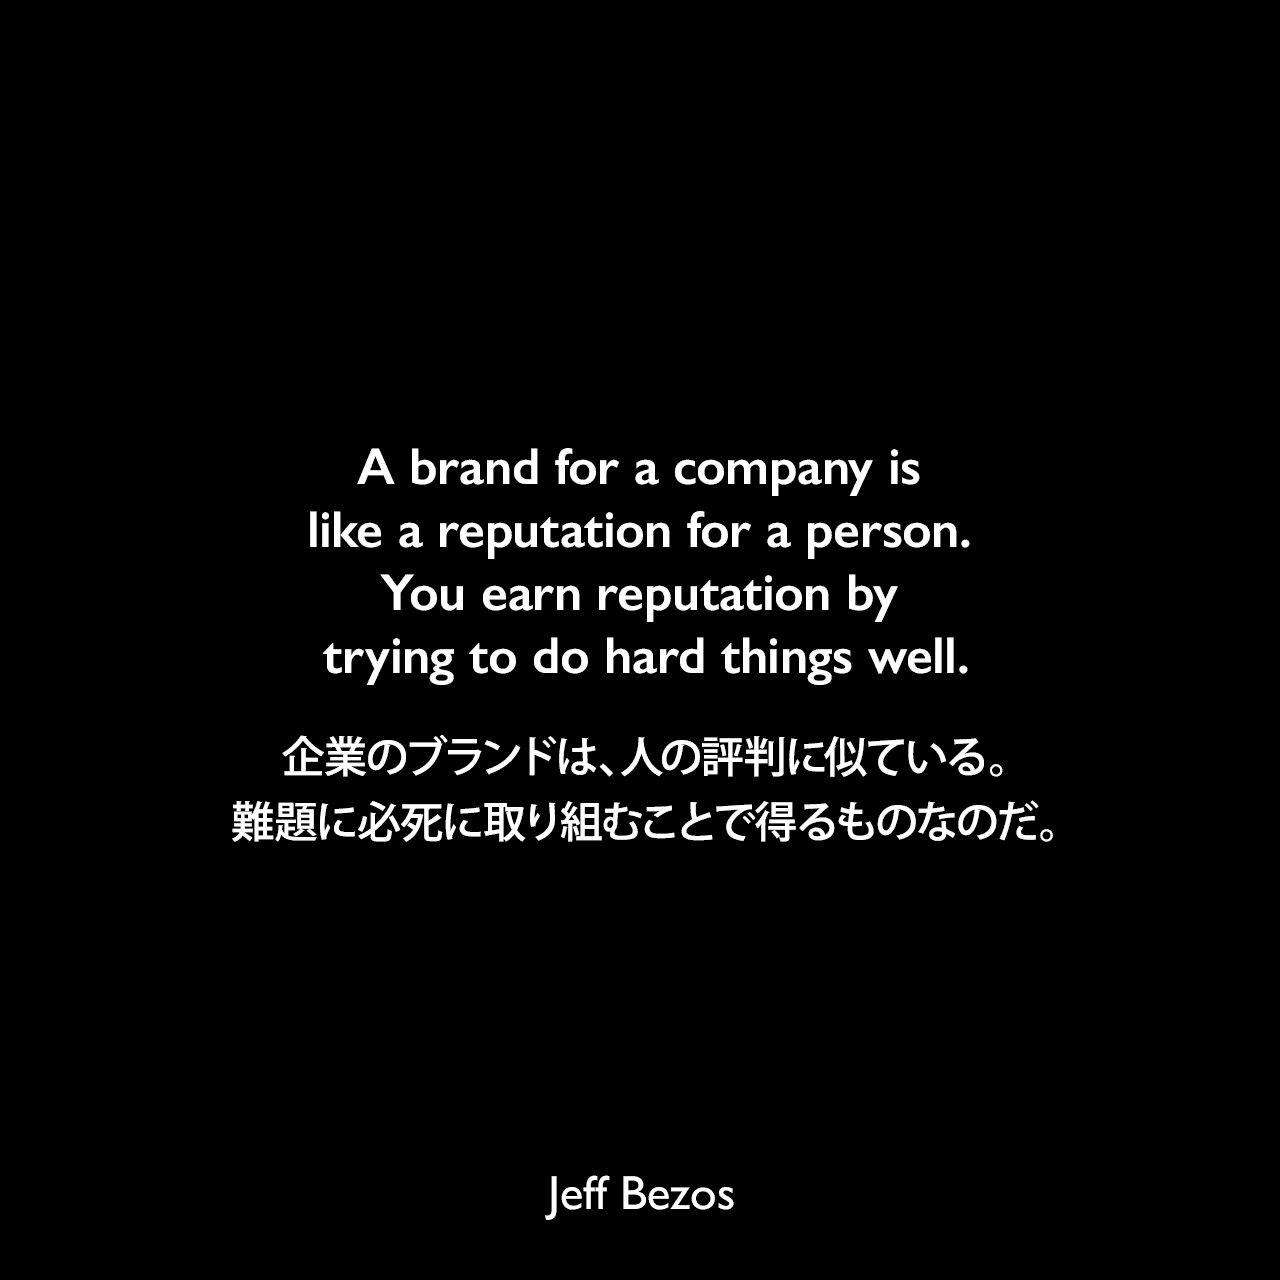 A brand for a company is like a reputation for a person. You earn reputation by trying to do hard things well.企業のブランドは、人の評判に似ている。難題に必死に取り組むことで得るものなのだ。Jeff Bezos